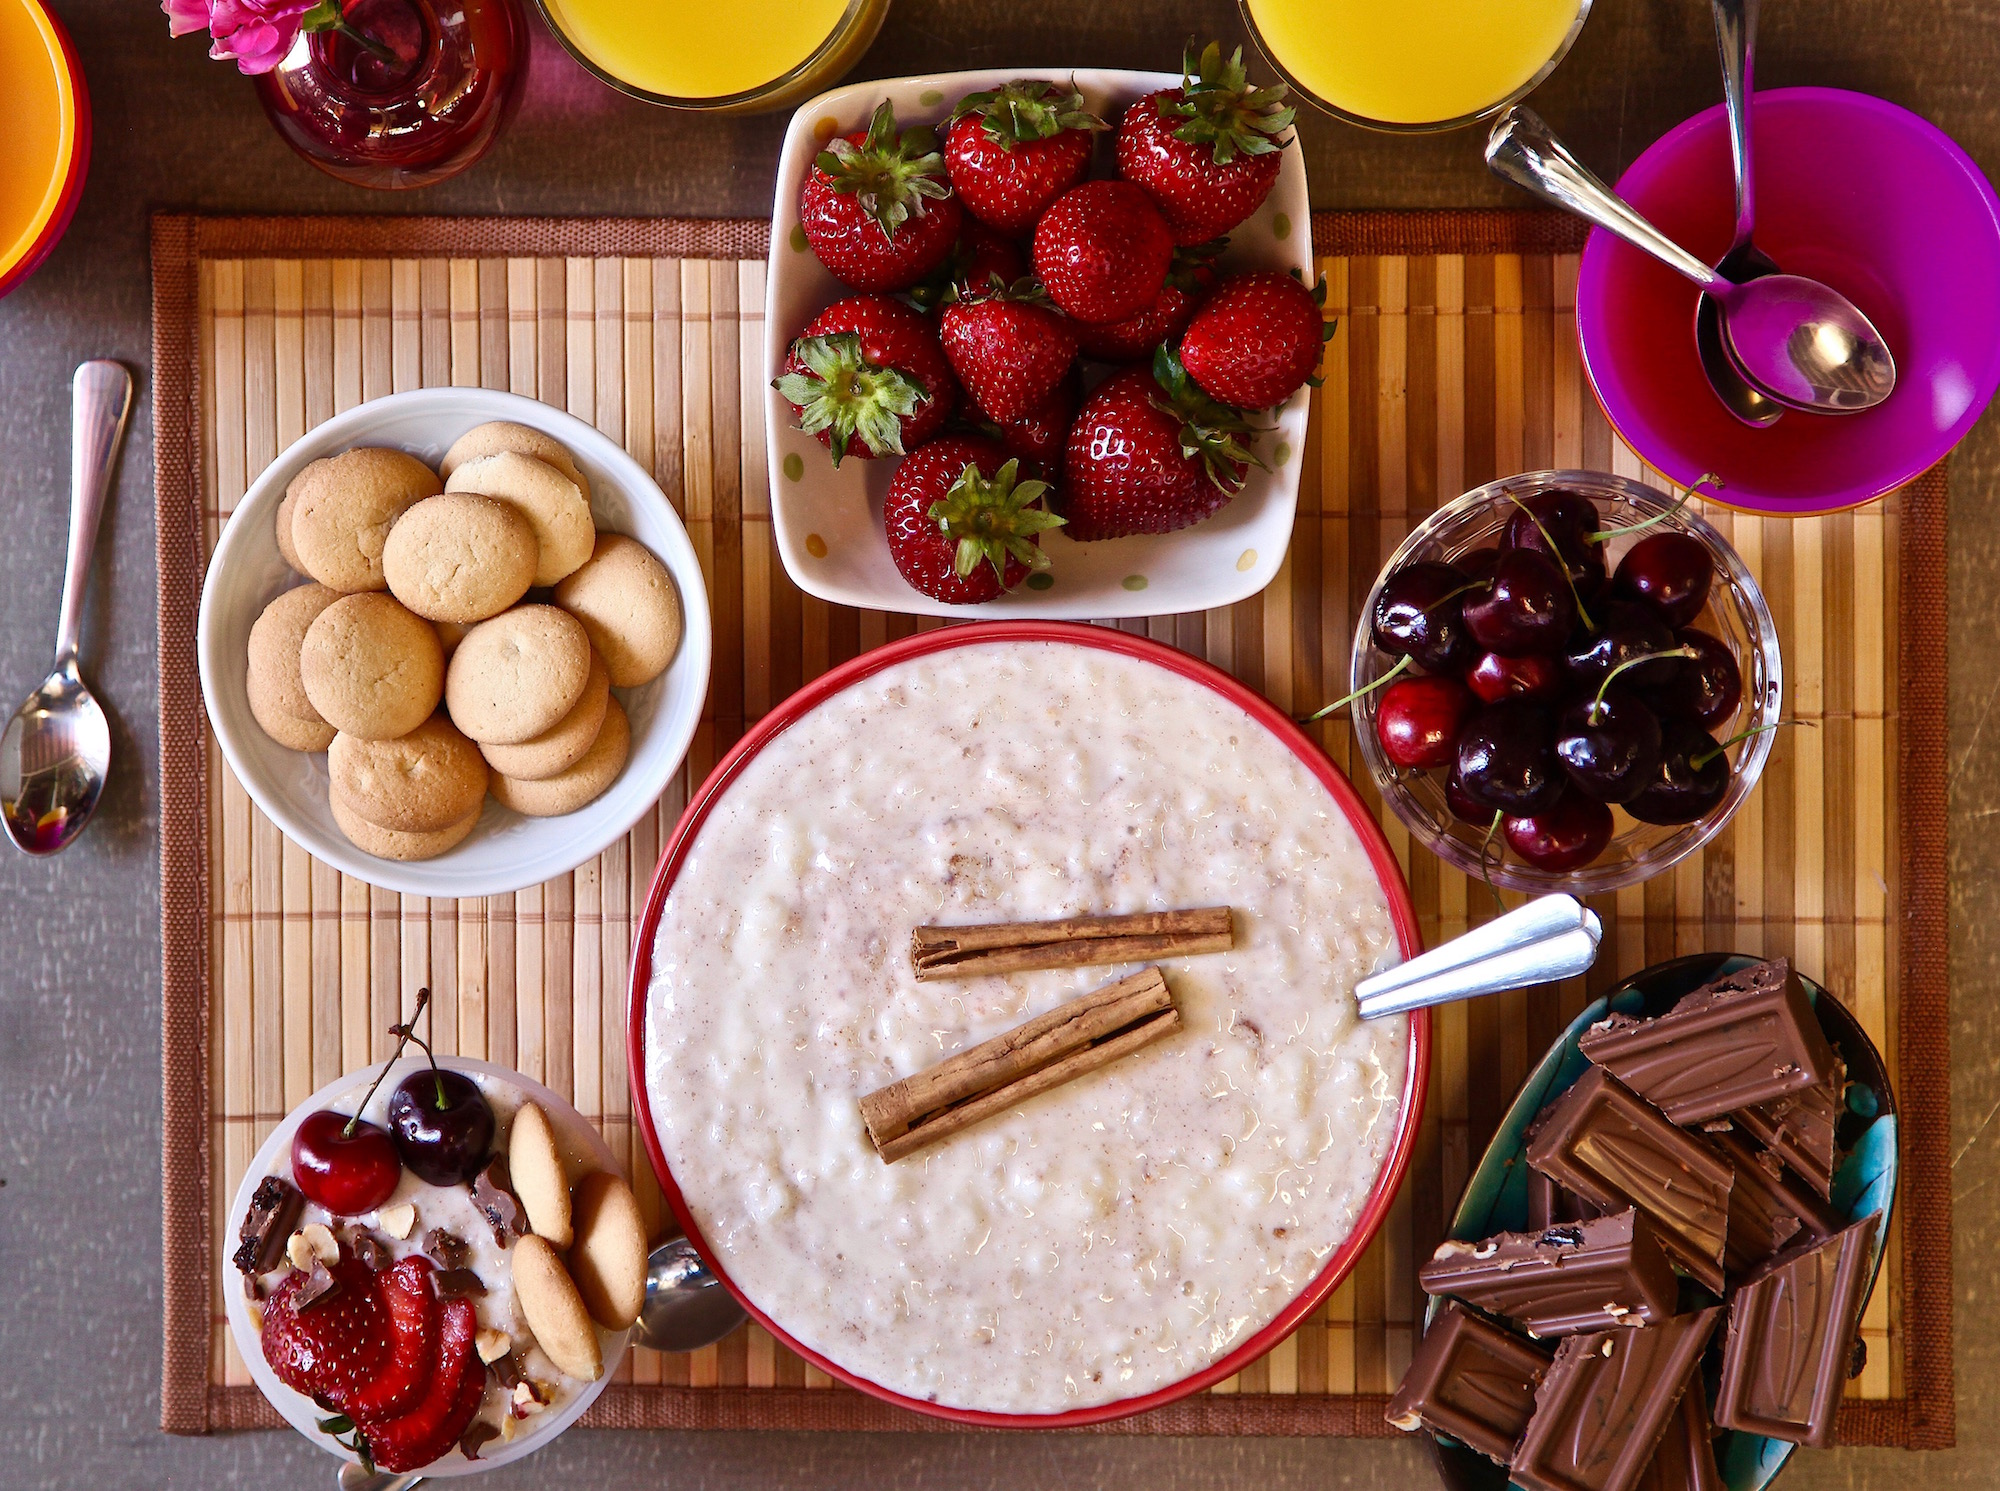 Arroz con leche bar all ingredients bought at ALDI